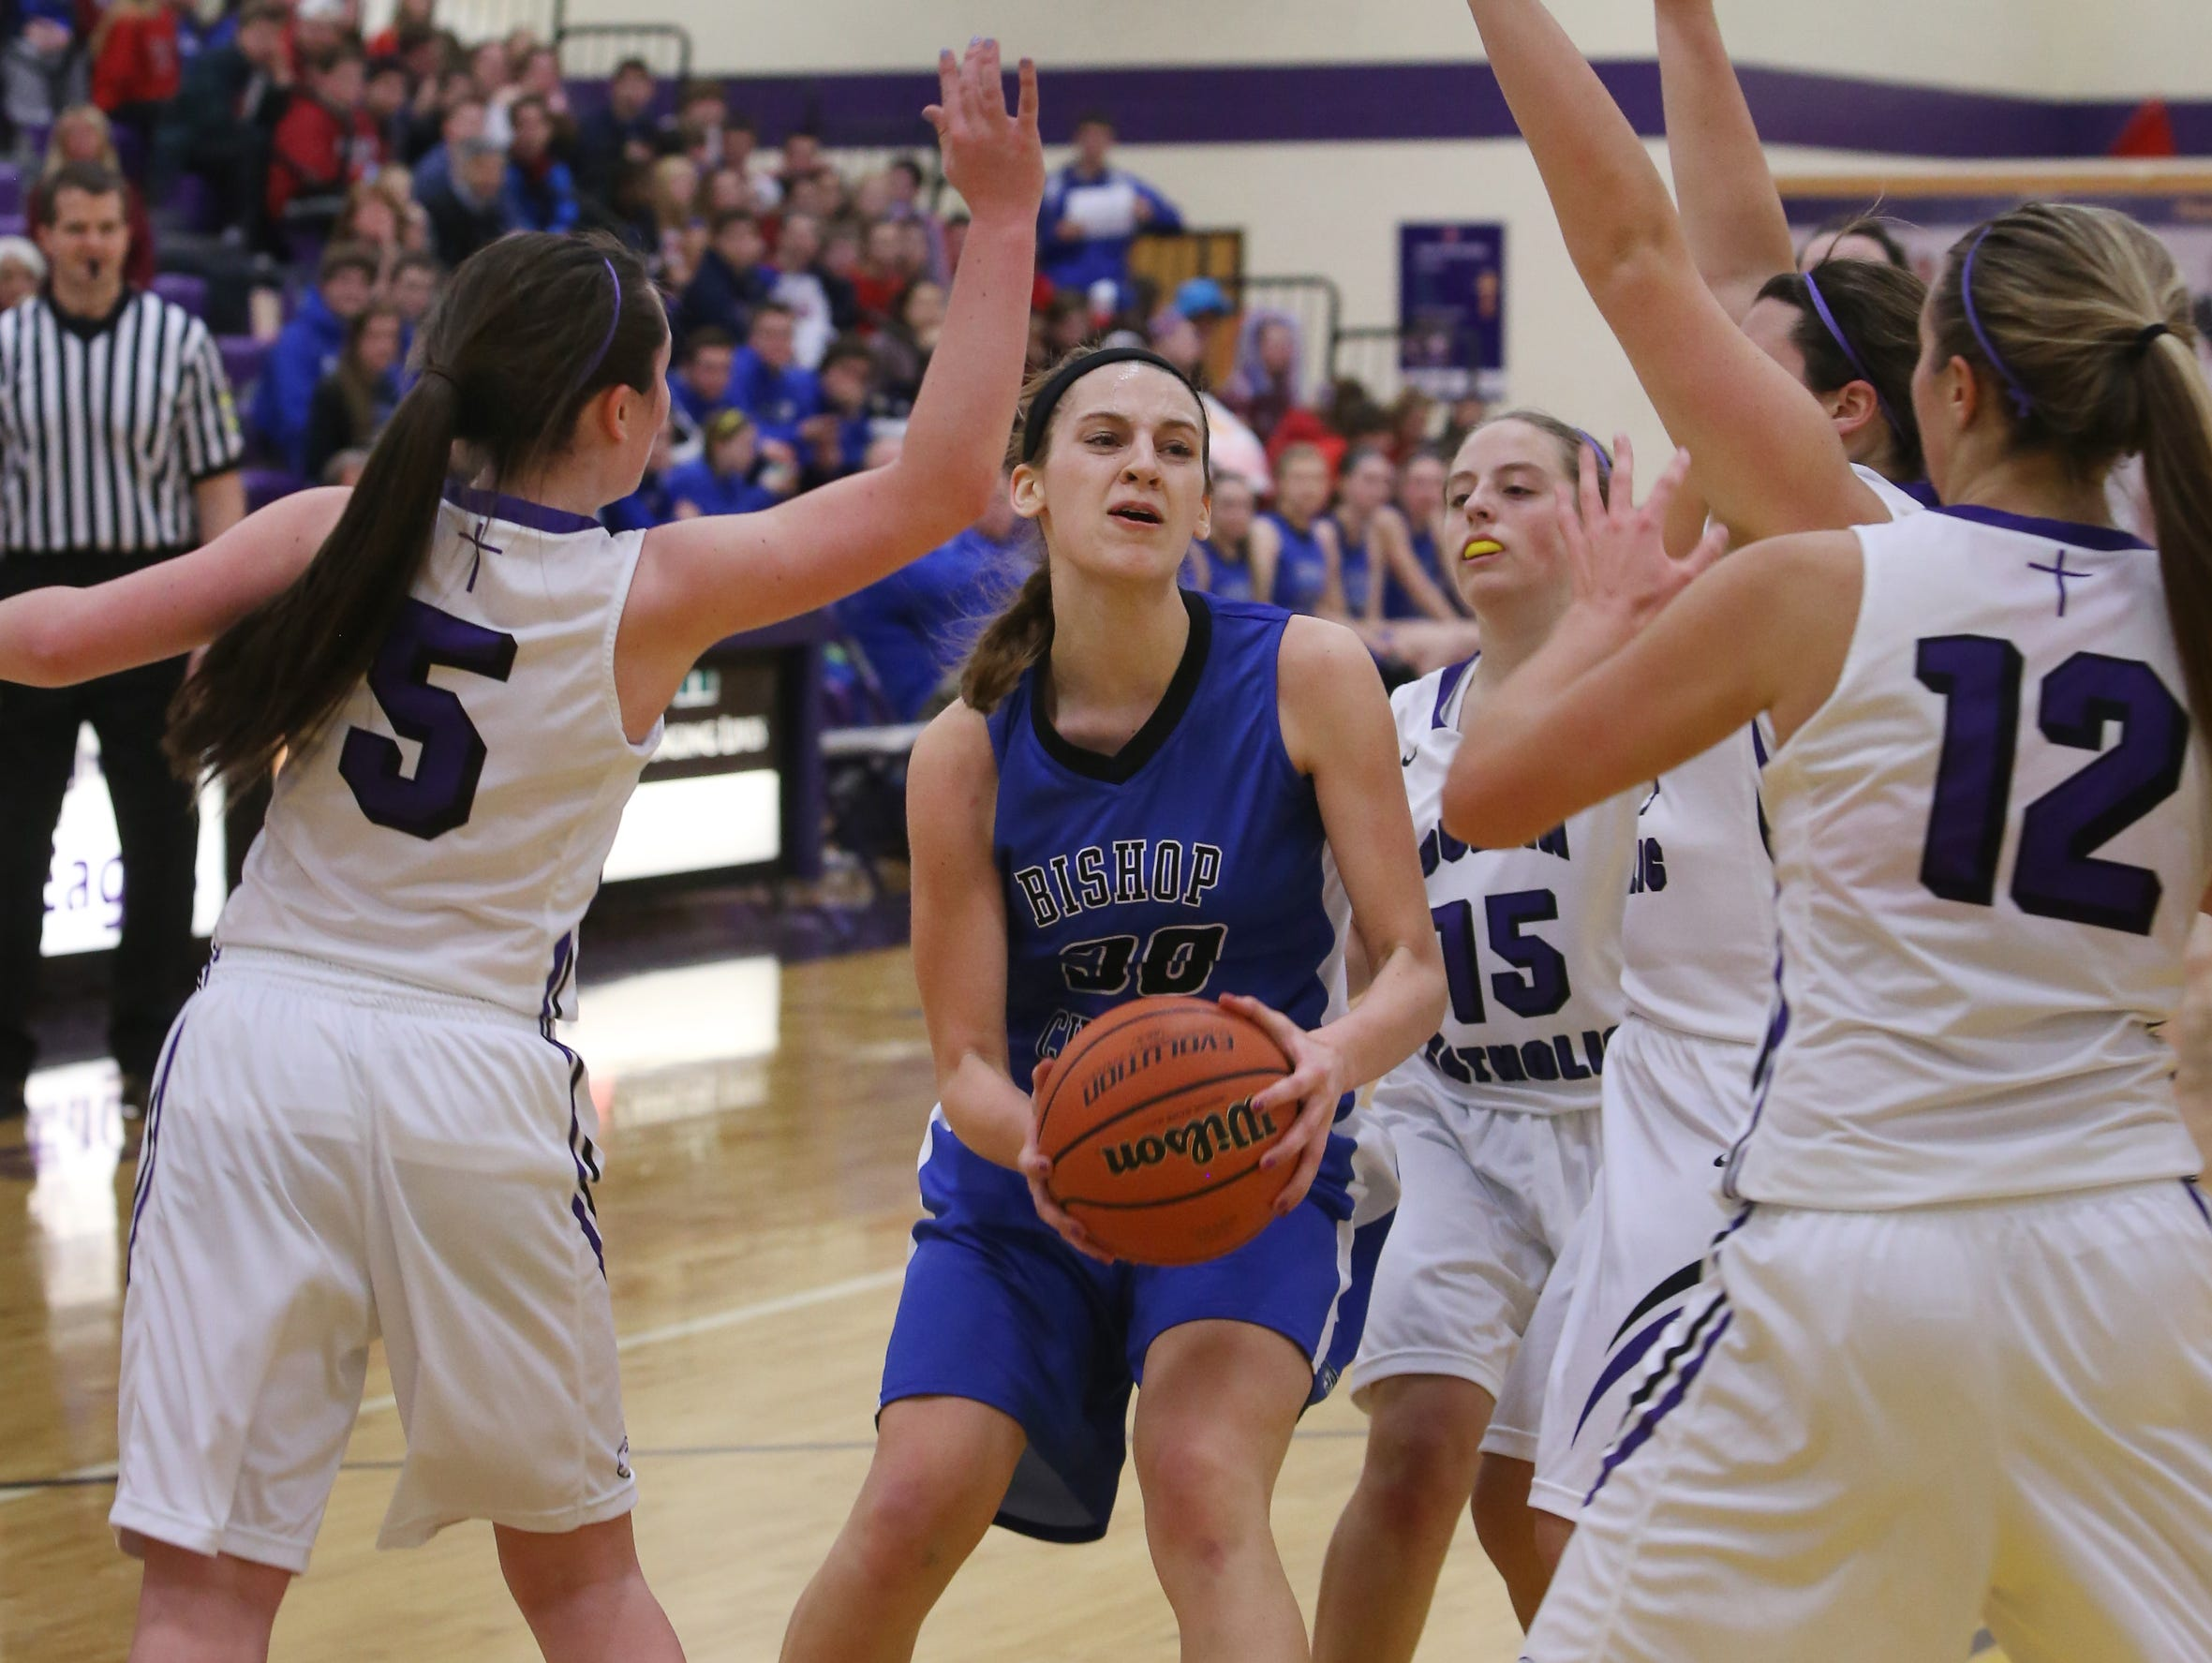 Bishop Chatard's Anna Logan, the game's high scorer with 17 points, is guarded by four Golden Eagles (from left), Sarah Yount, Tori Sullivan, Annamarie Augustinovicz, and Kristy Thiem, during the Trojans girls' 92-41 blowout over Guerin Catholic High School in Noblesville on Friday, Jan. 9, 2015.